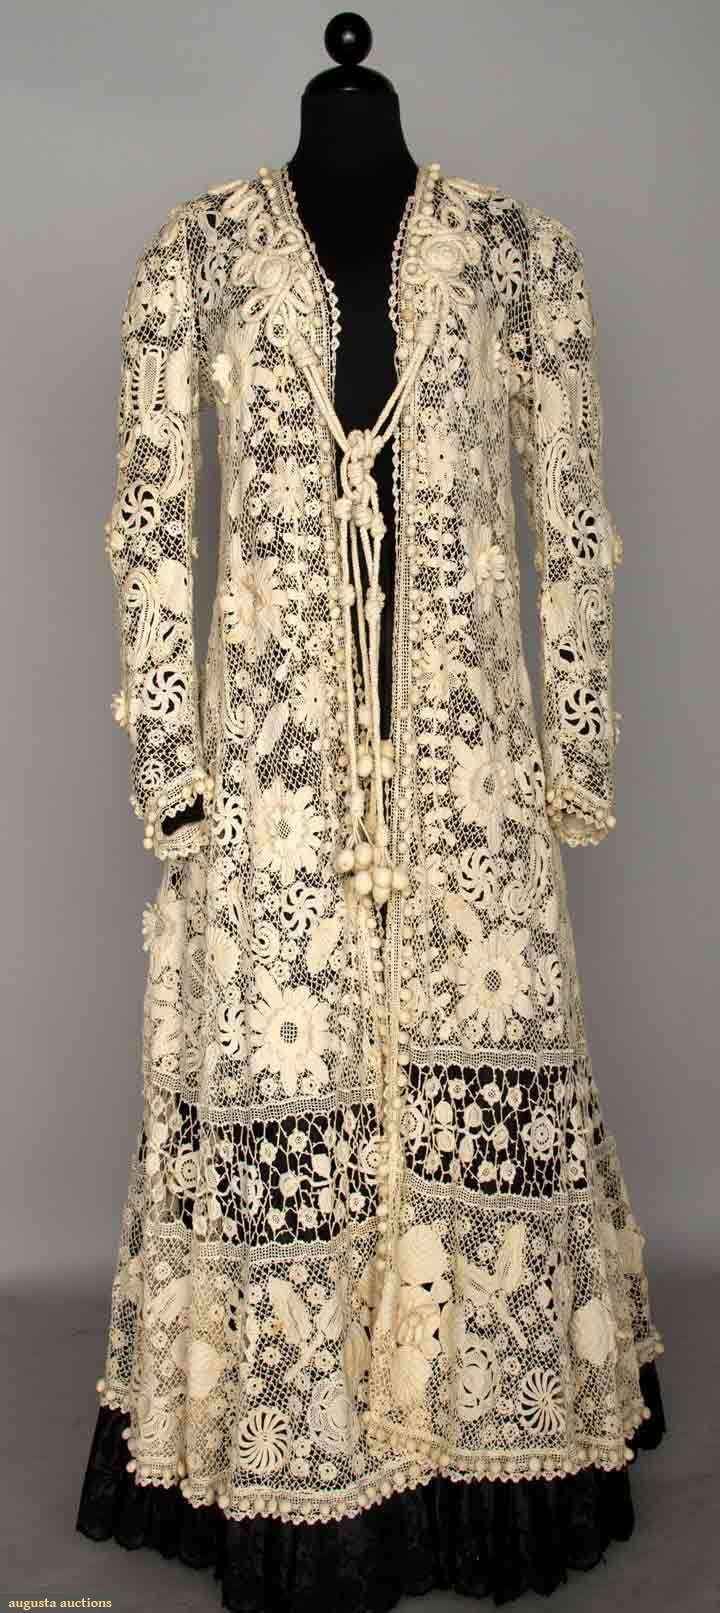 Belle Epoque Irish Lace Coat, C. 1900, White, full length, raised petal blossoms, bnd near hem of openwork Irish lace, soutache trim in F & B yoke area, small crochet balls around perimeter & hem, cord tie w/ crochet strawberries, Augusta Auctions, November 13, 2013 - NYC